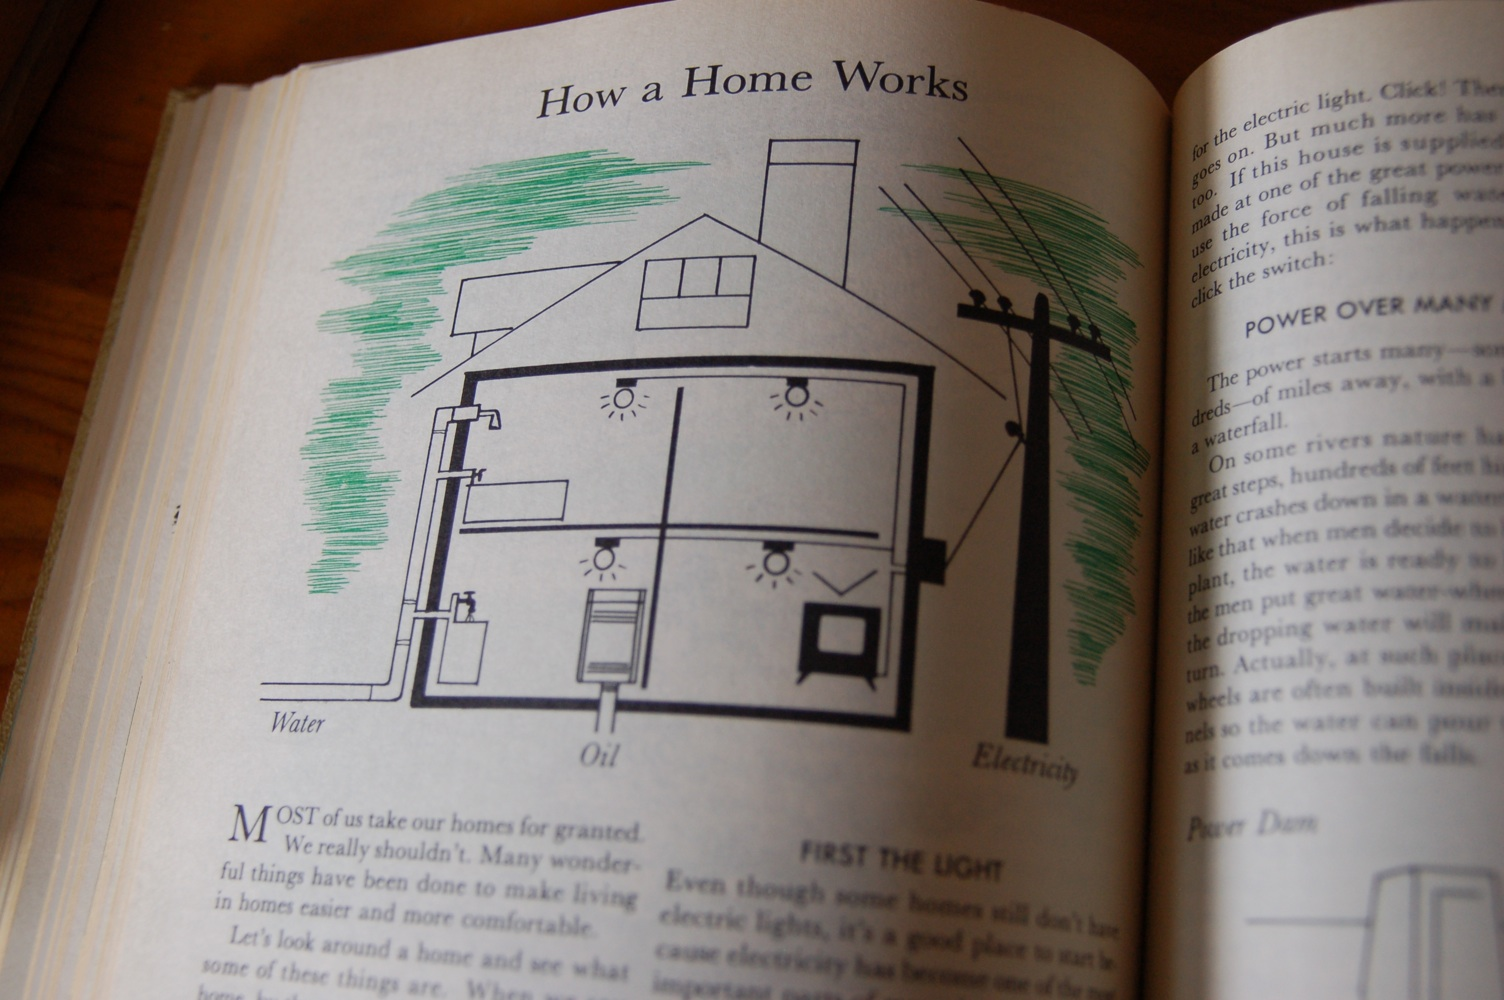 How a Home Works